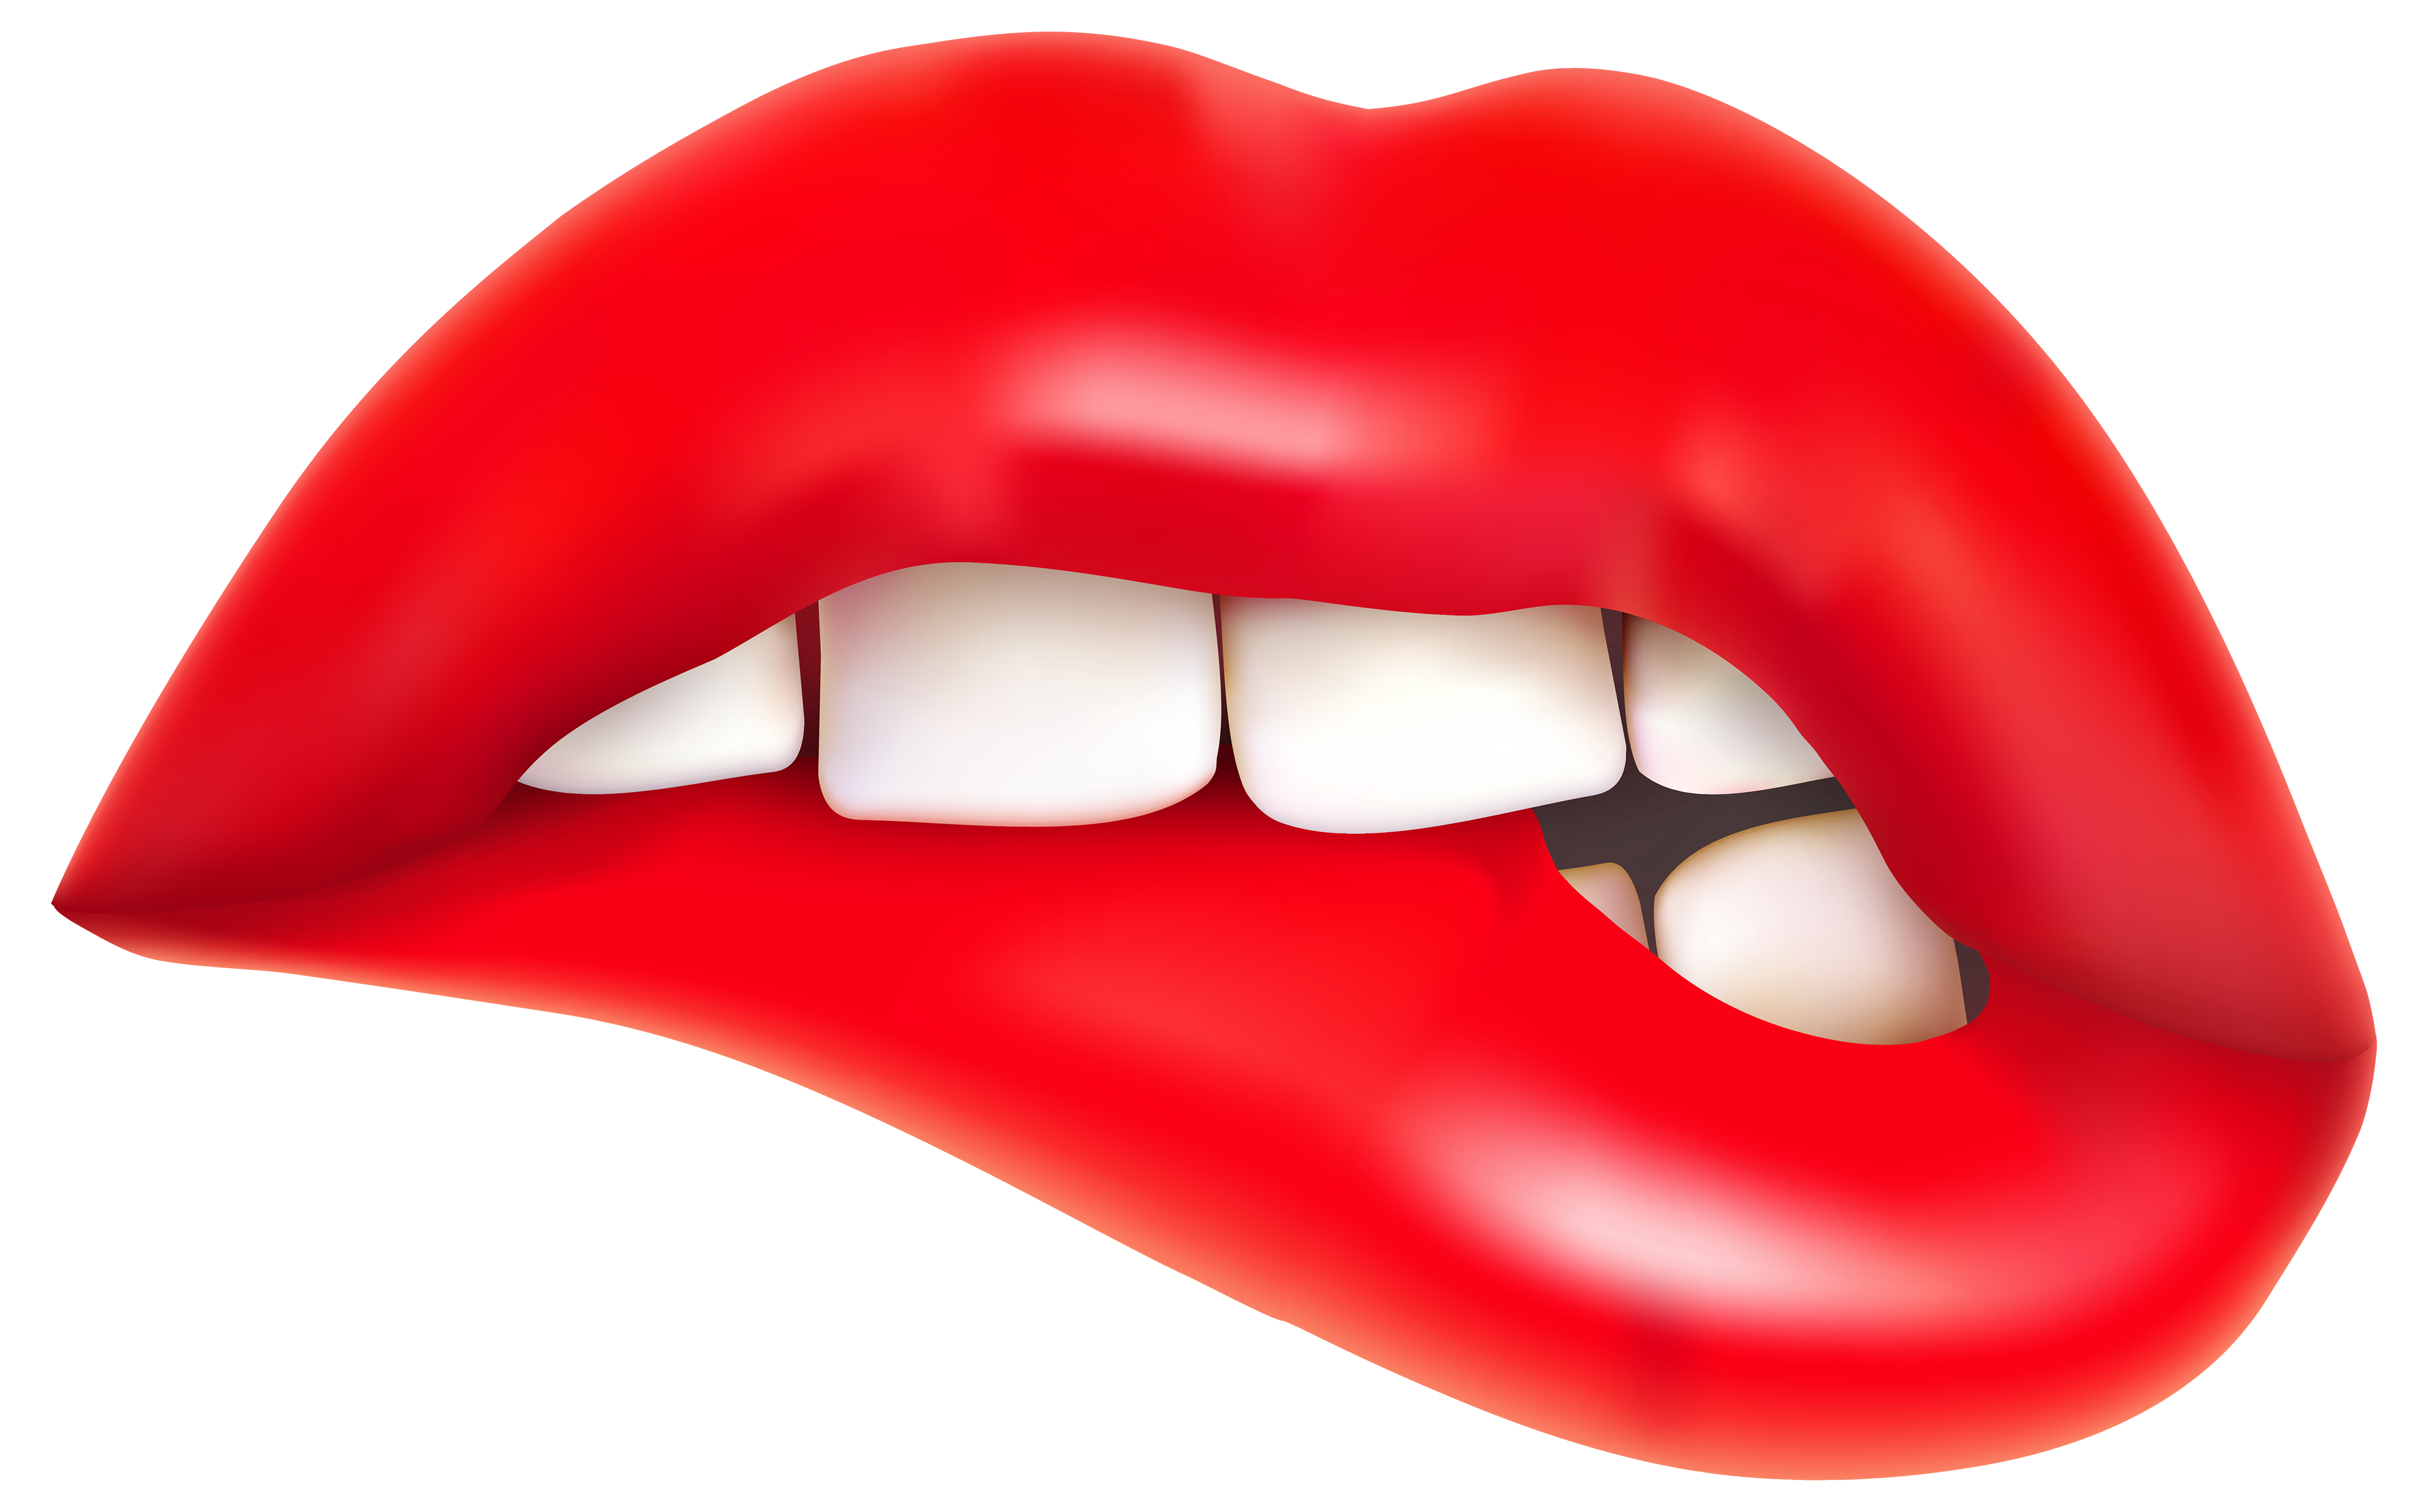 Lips png the best. Clipart woman mouth